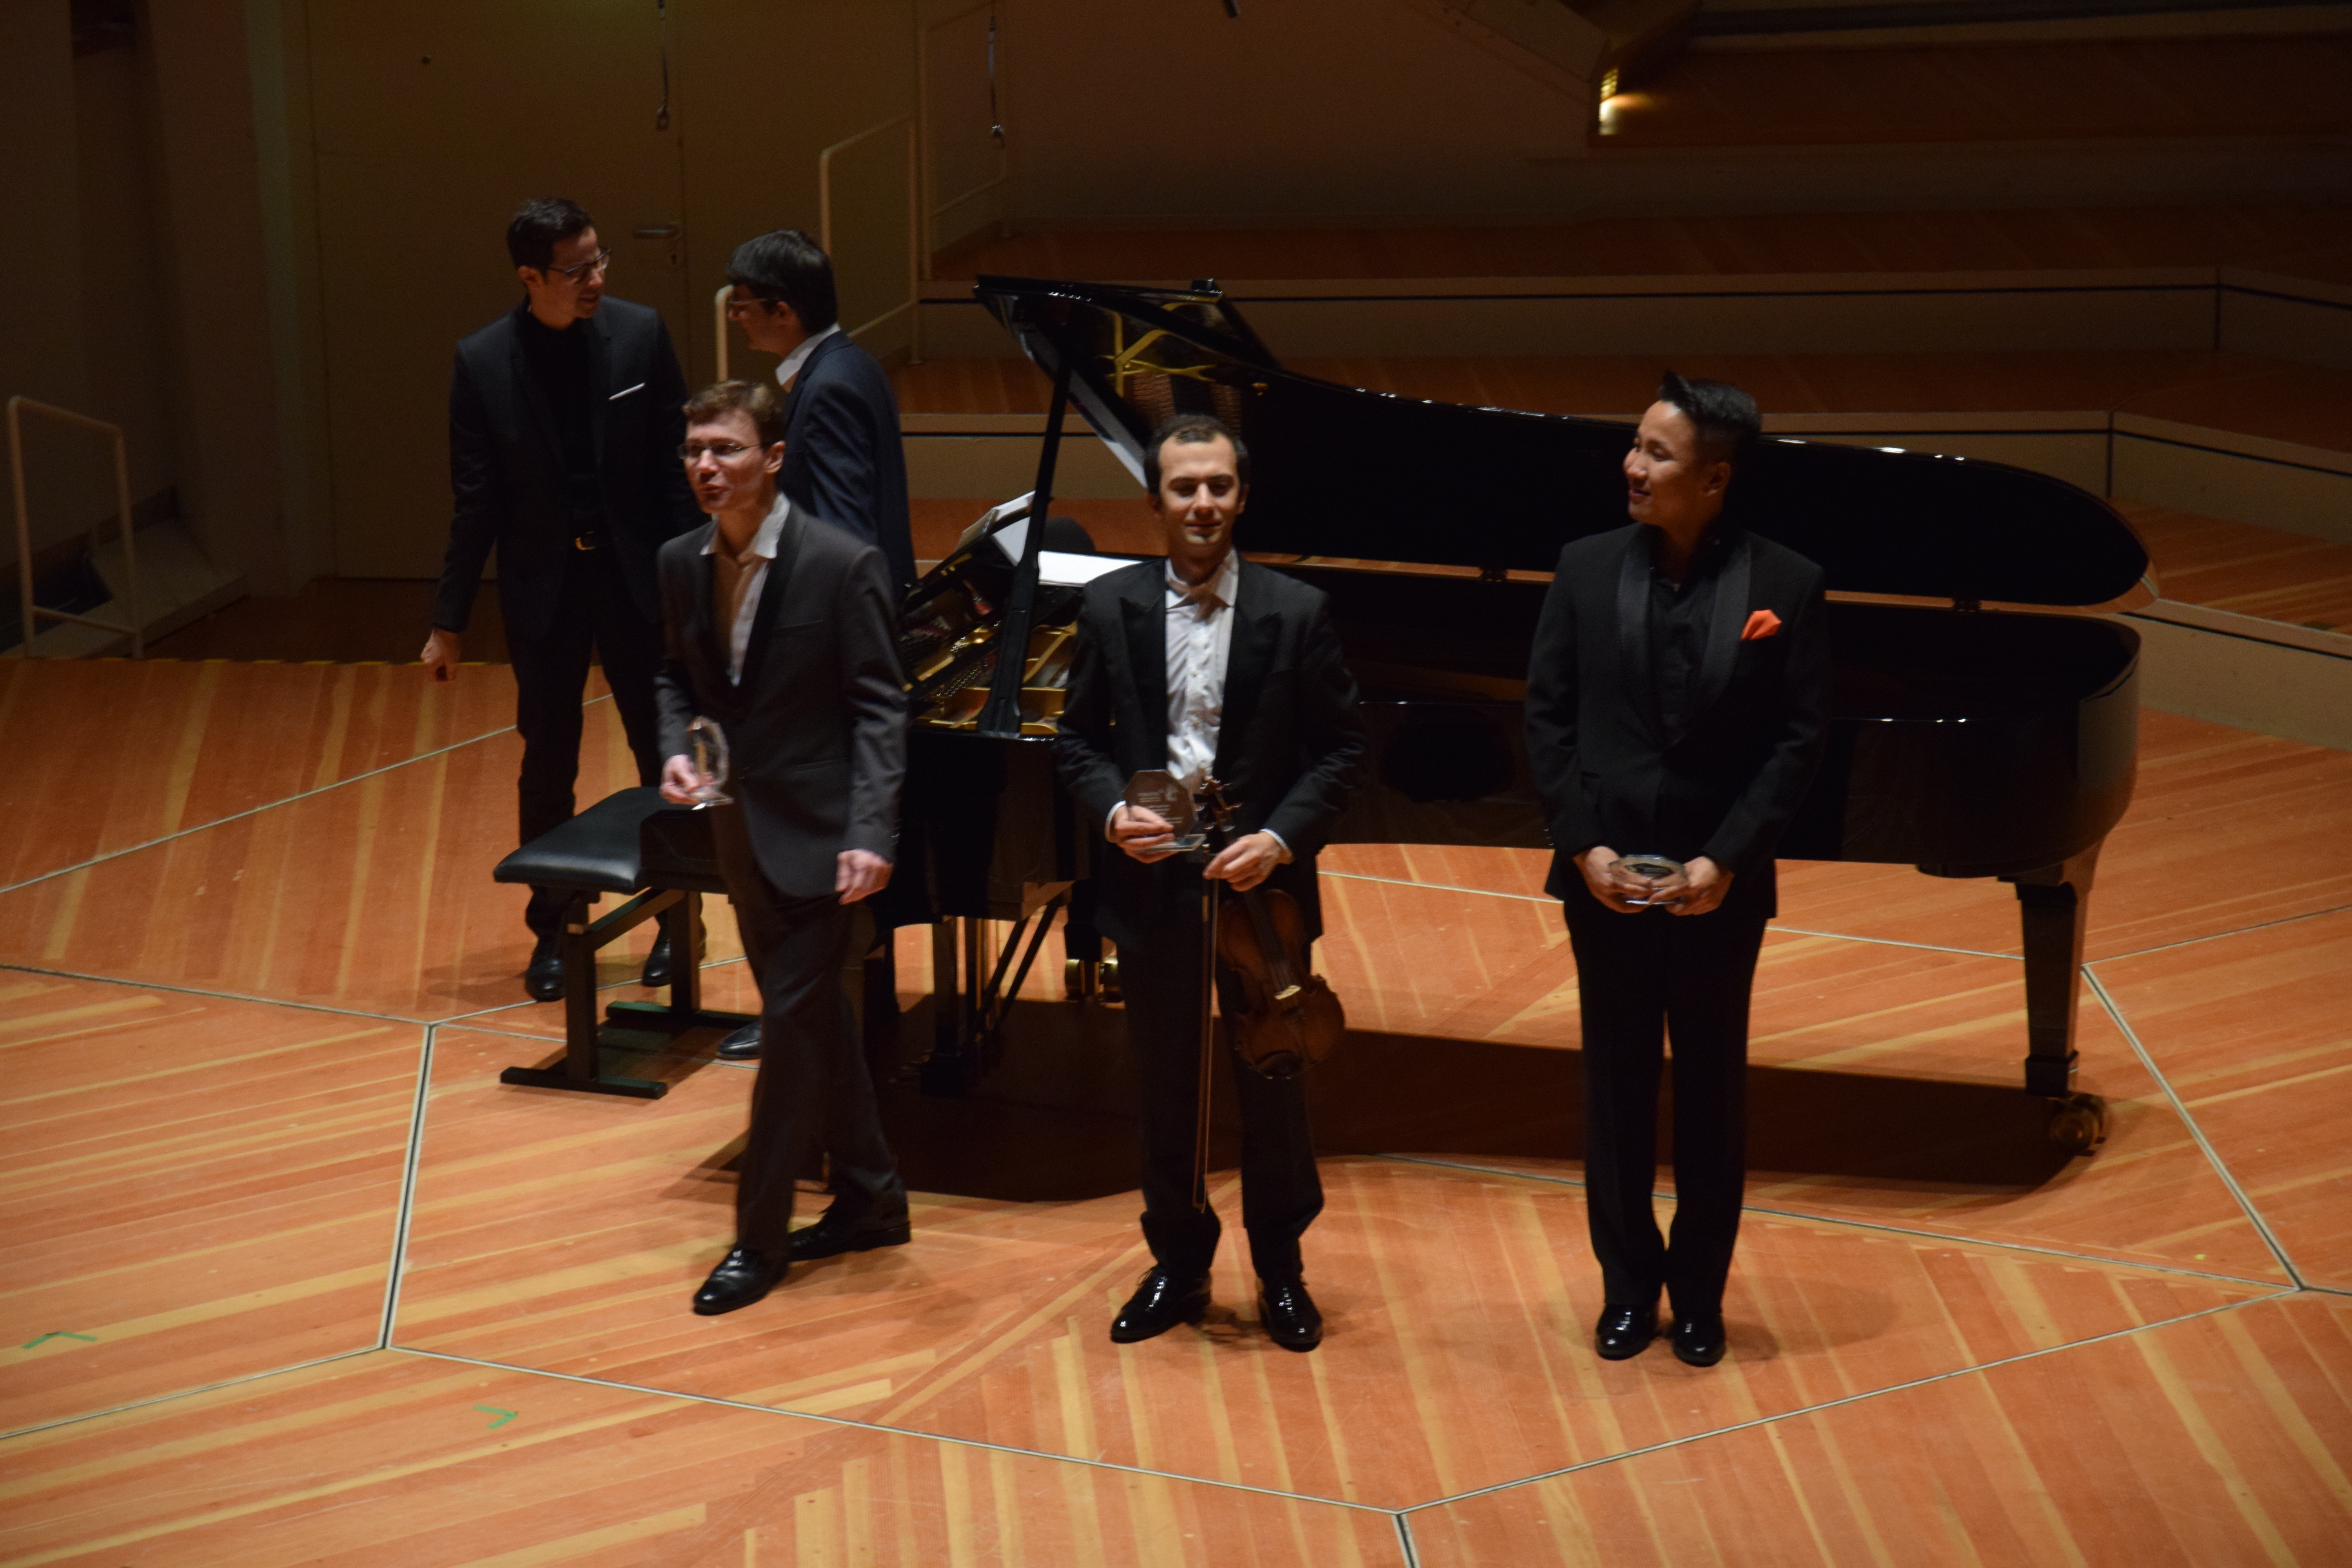 berliner music competition 1